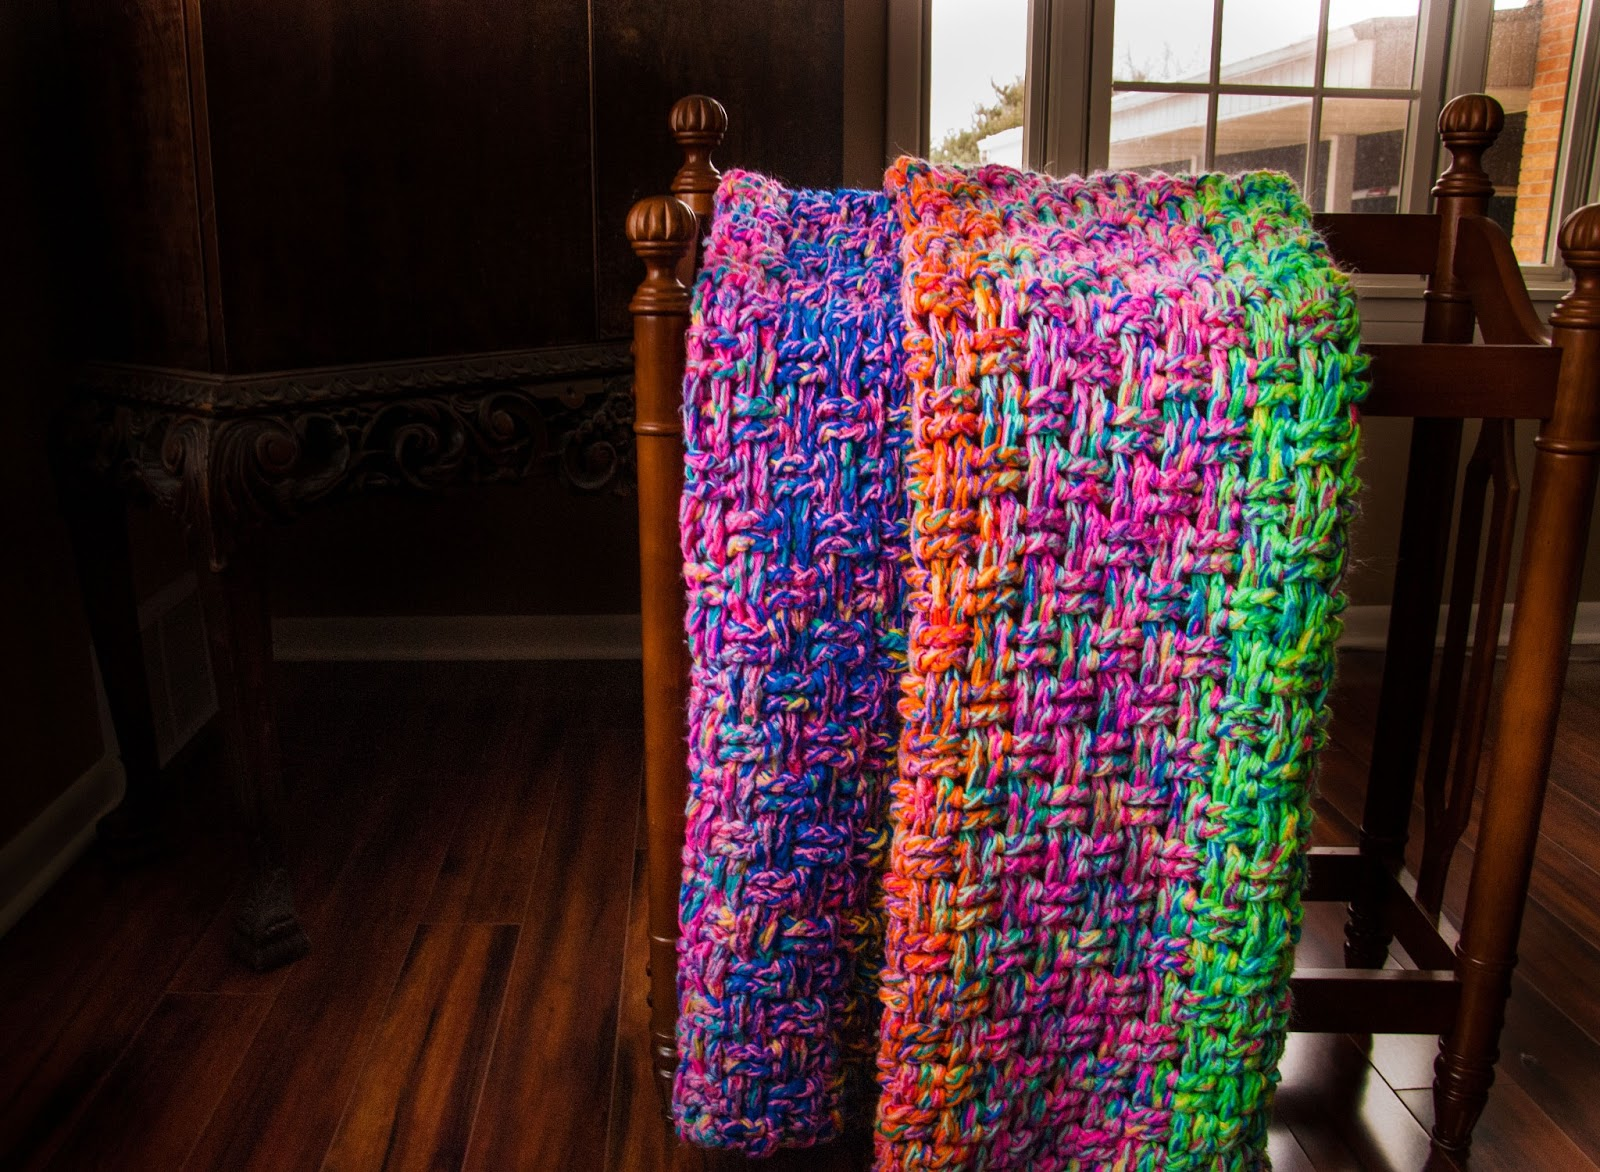 Crochet Patterns To Use Up Yarn : FPF: Zimtstern Mitts and Scrap Yarn Blanket tutorial ...